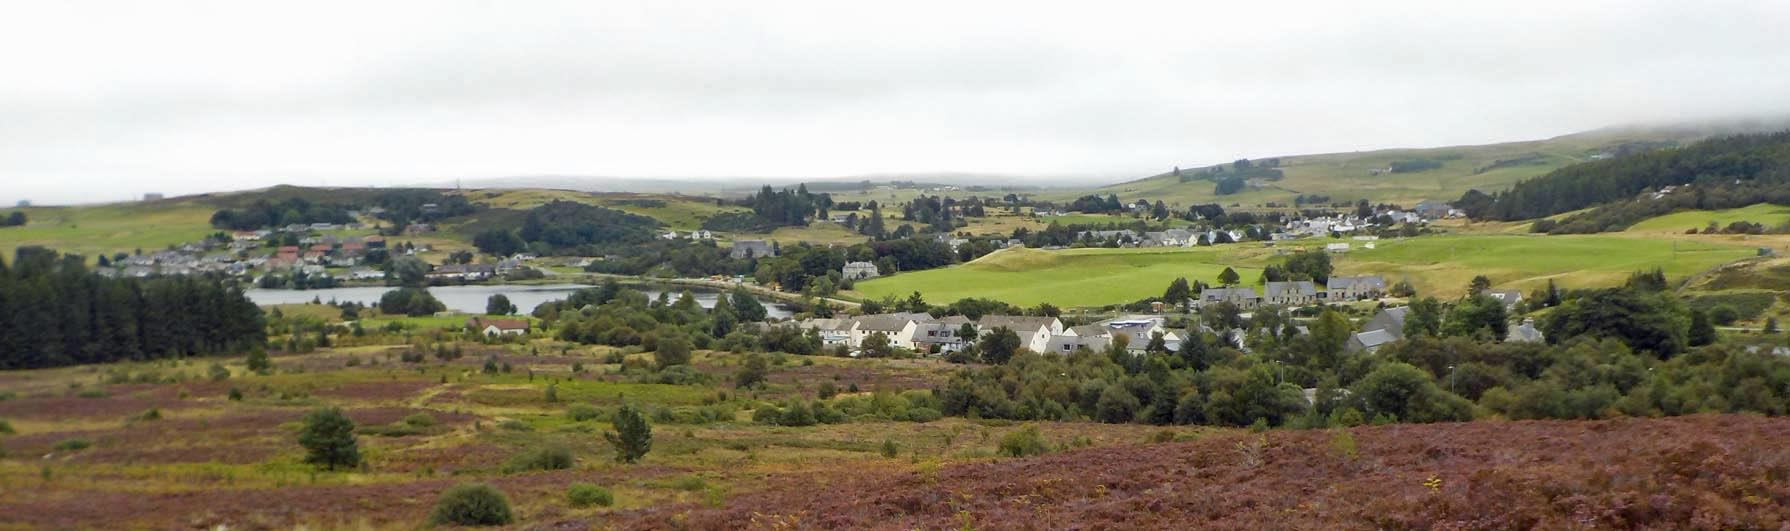 9-7-16-ord-cairns-lairg-002